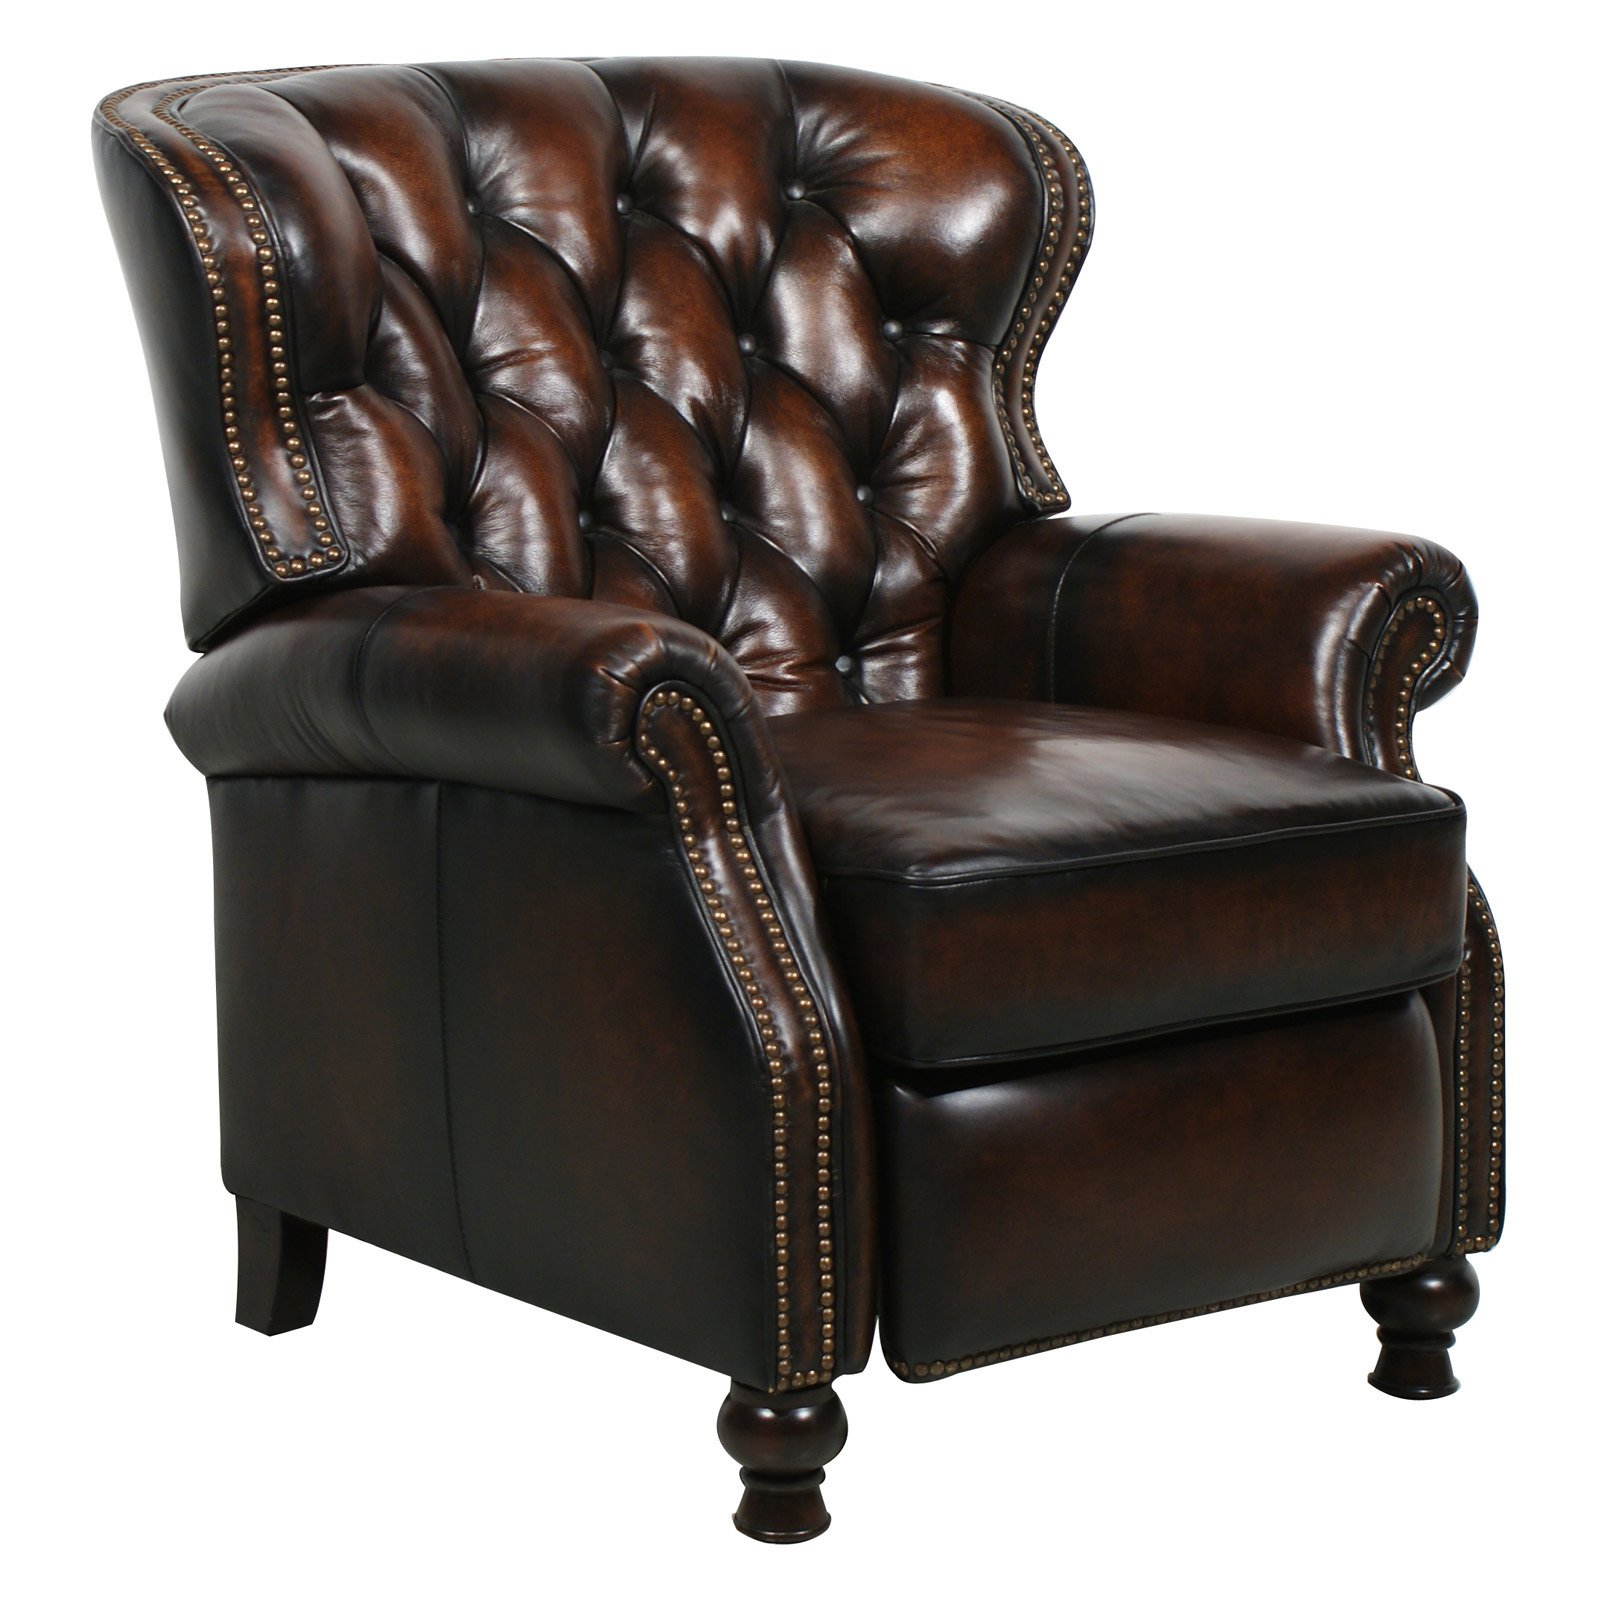 Barcalounger Presidential II Leather Recliner with Nailheads